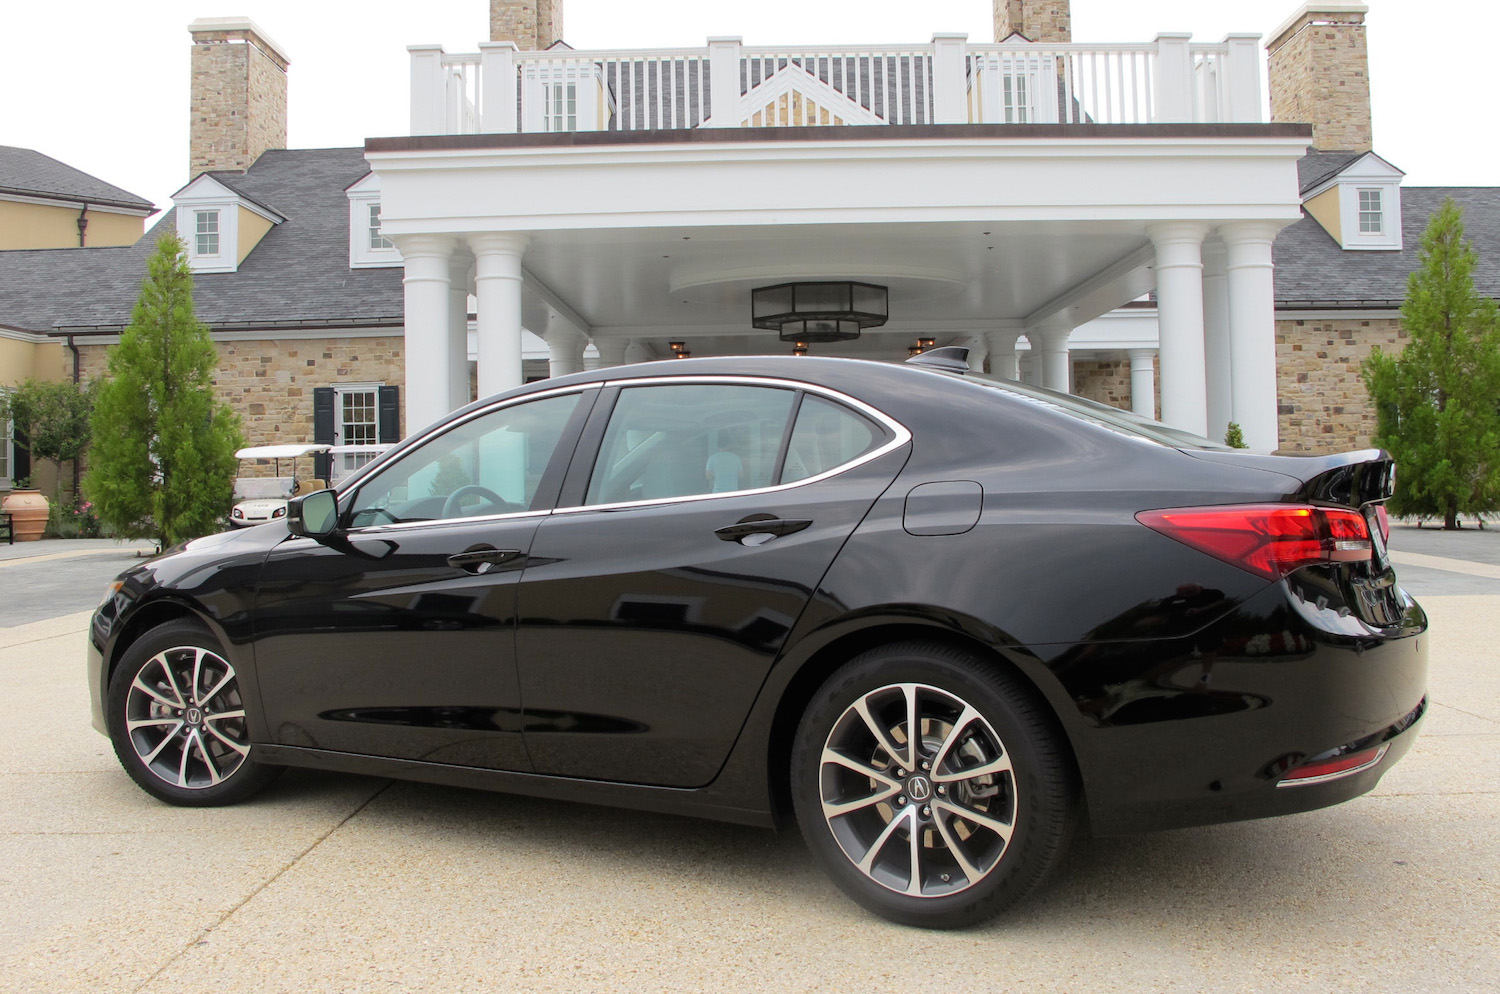 2015 Acura TLX review - WHEELS.ca